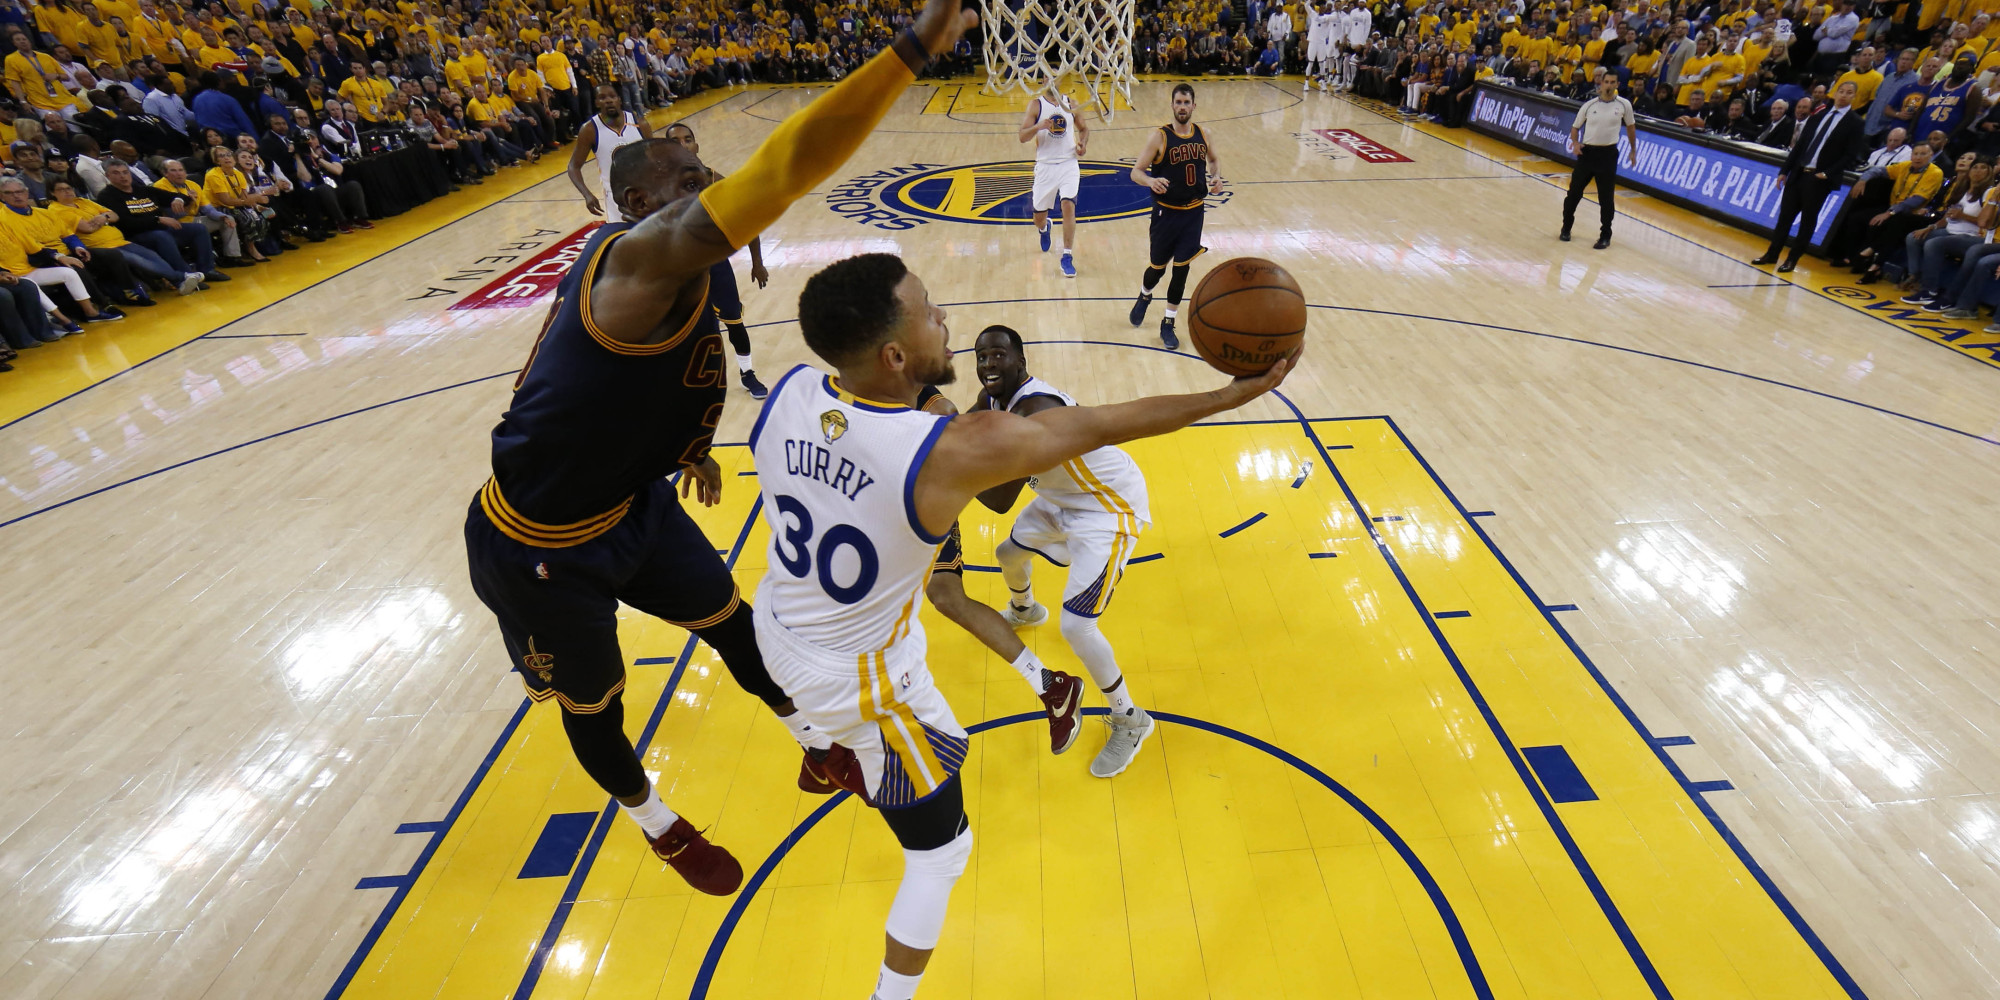 nba finals live stream deutschland